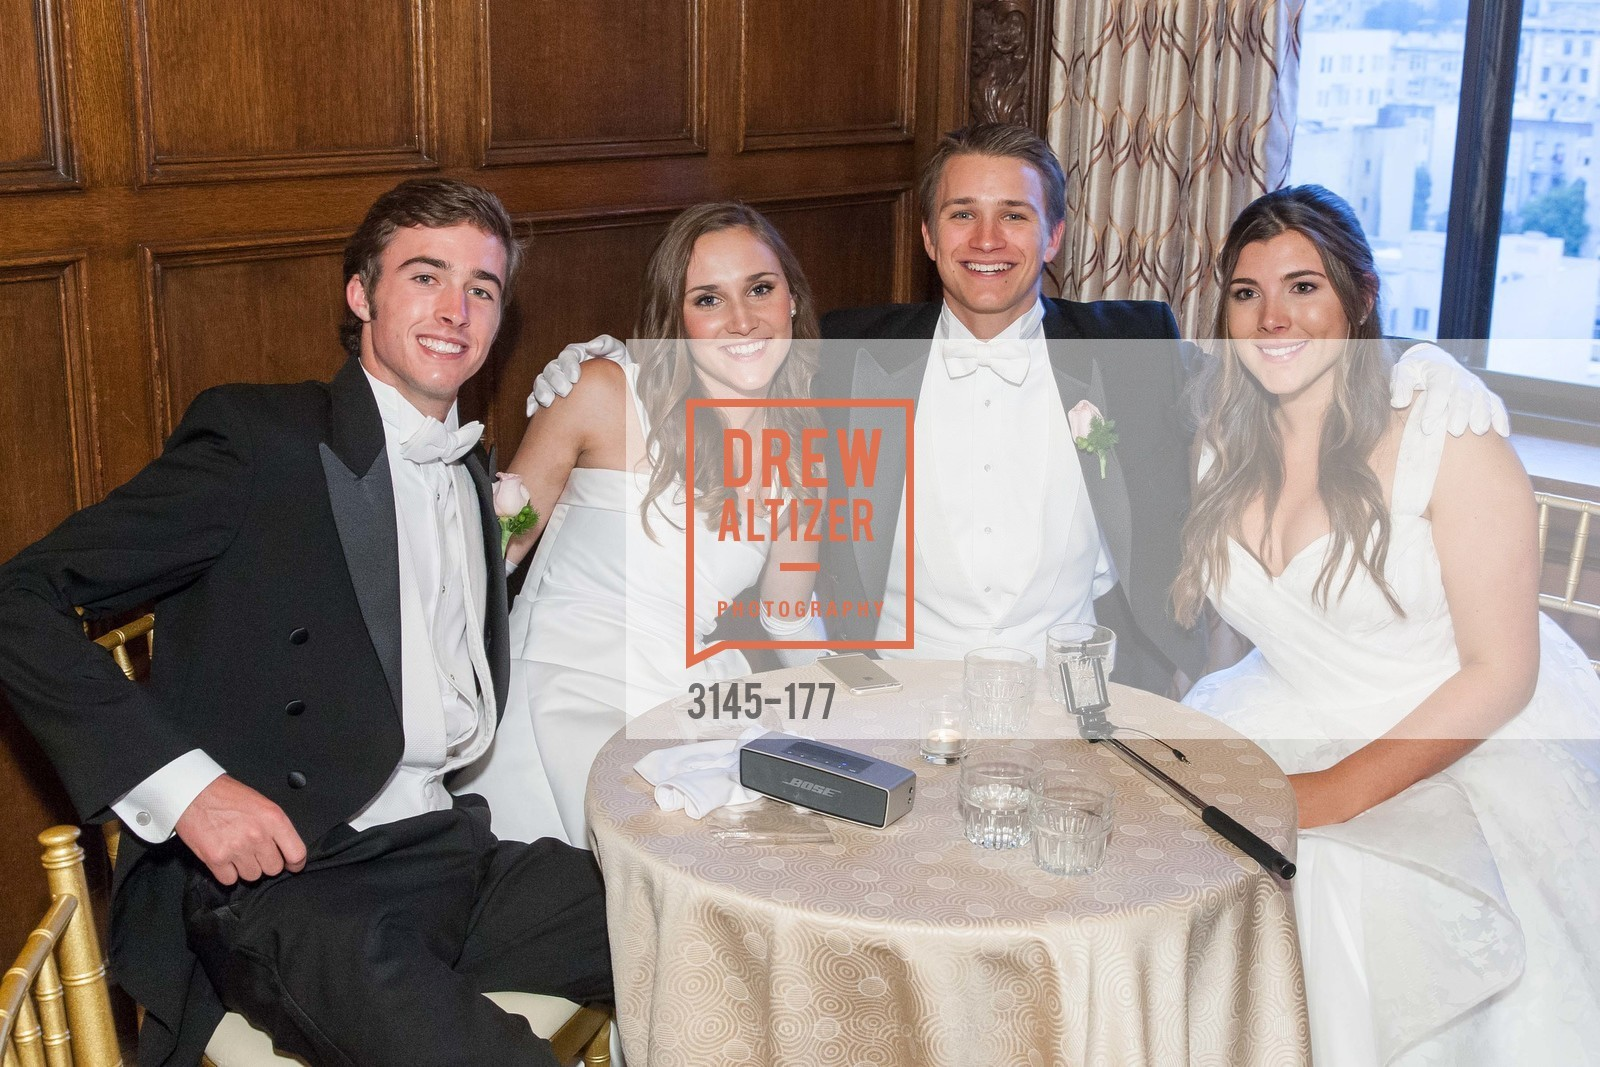 Joseph Jennison Ladd, Connolly Grace Steigerwald, Ryan Nicholas Clark, Diana Laura Silvestri, The 2015 San Francisco Debutante Ball, The Westin St. Francis San Francisco Union Square. 335 Powell St, June 20th, 2015,Drew Altizer, Drew Altizer Photography, full-service agency, private events, San Francisco photographer, photographer california